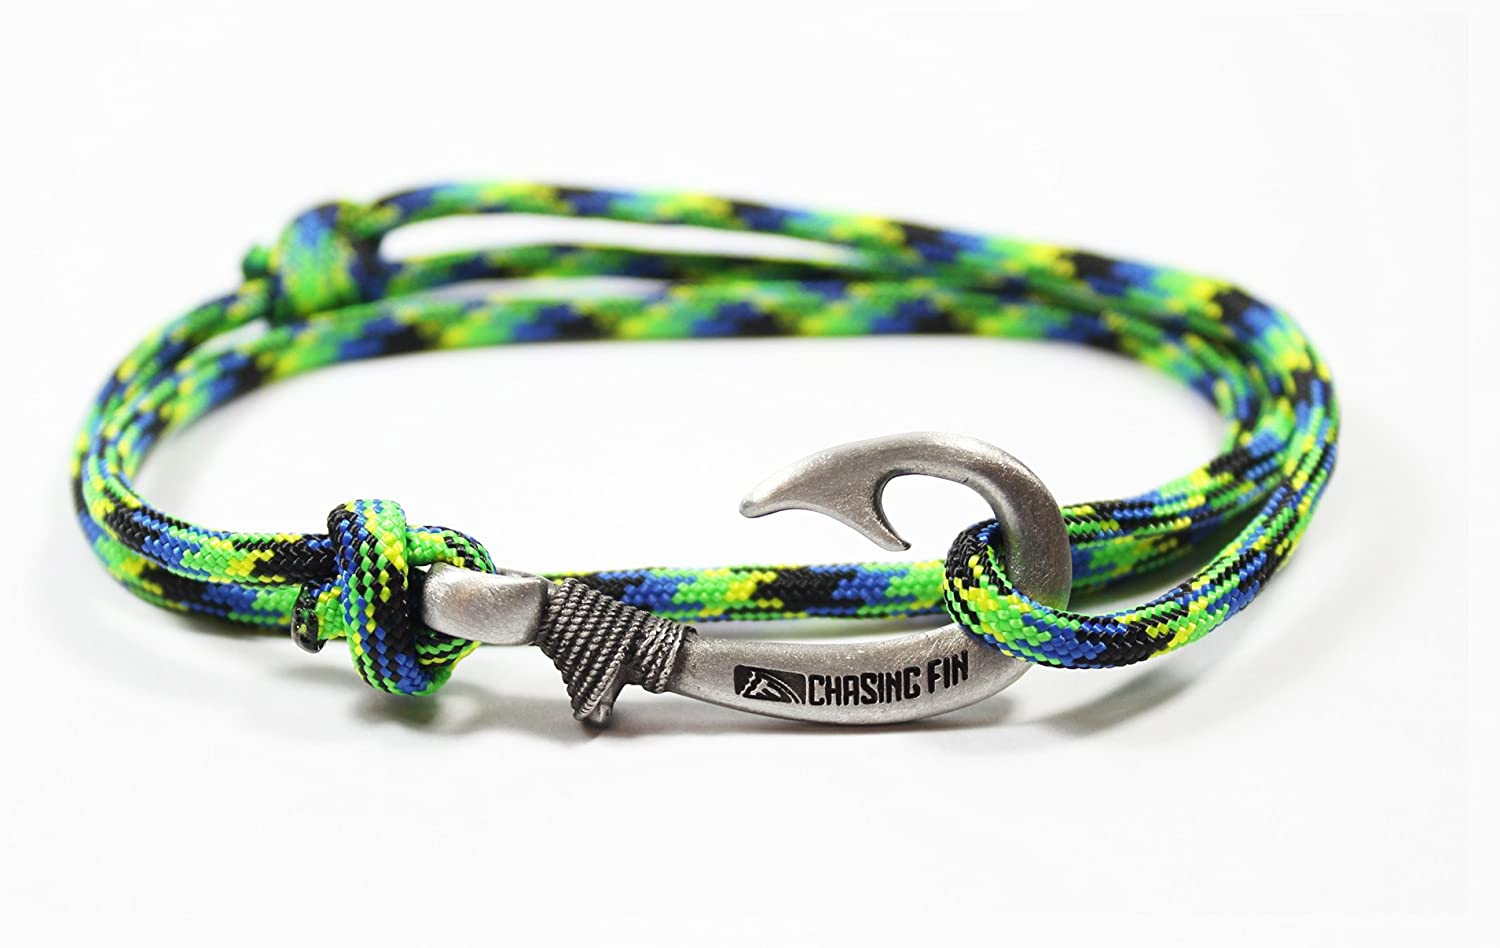 Chasing Fin Adjustable Fish Hook Bracelet - 550 Military Paracord with Fish Hook Pendant - Also Worn as Necklace or Ankle Bracelet